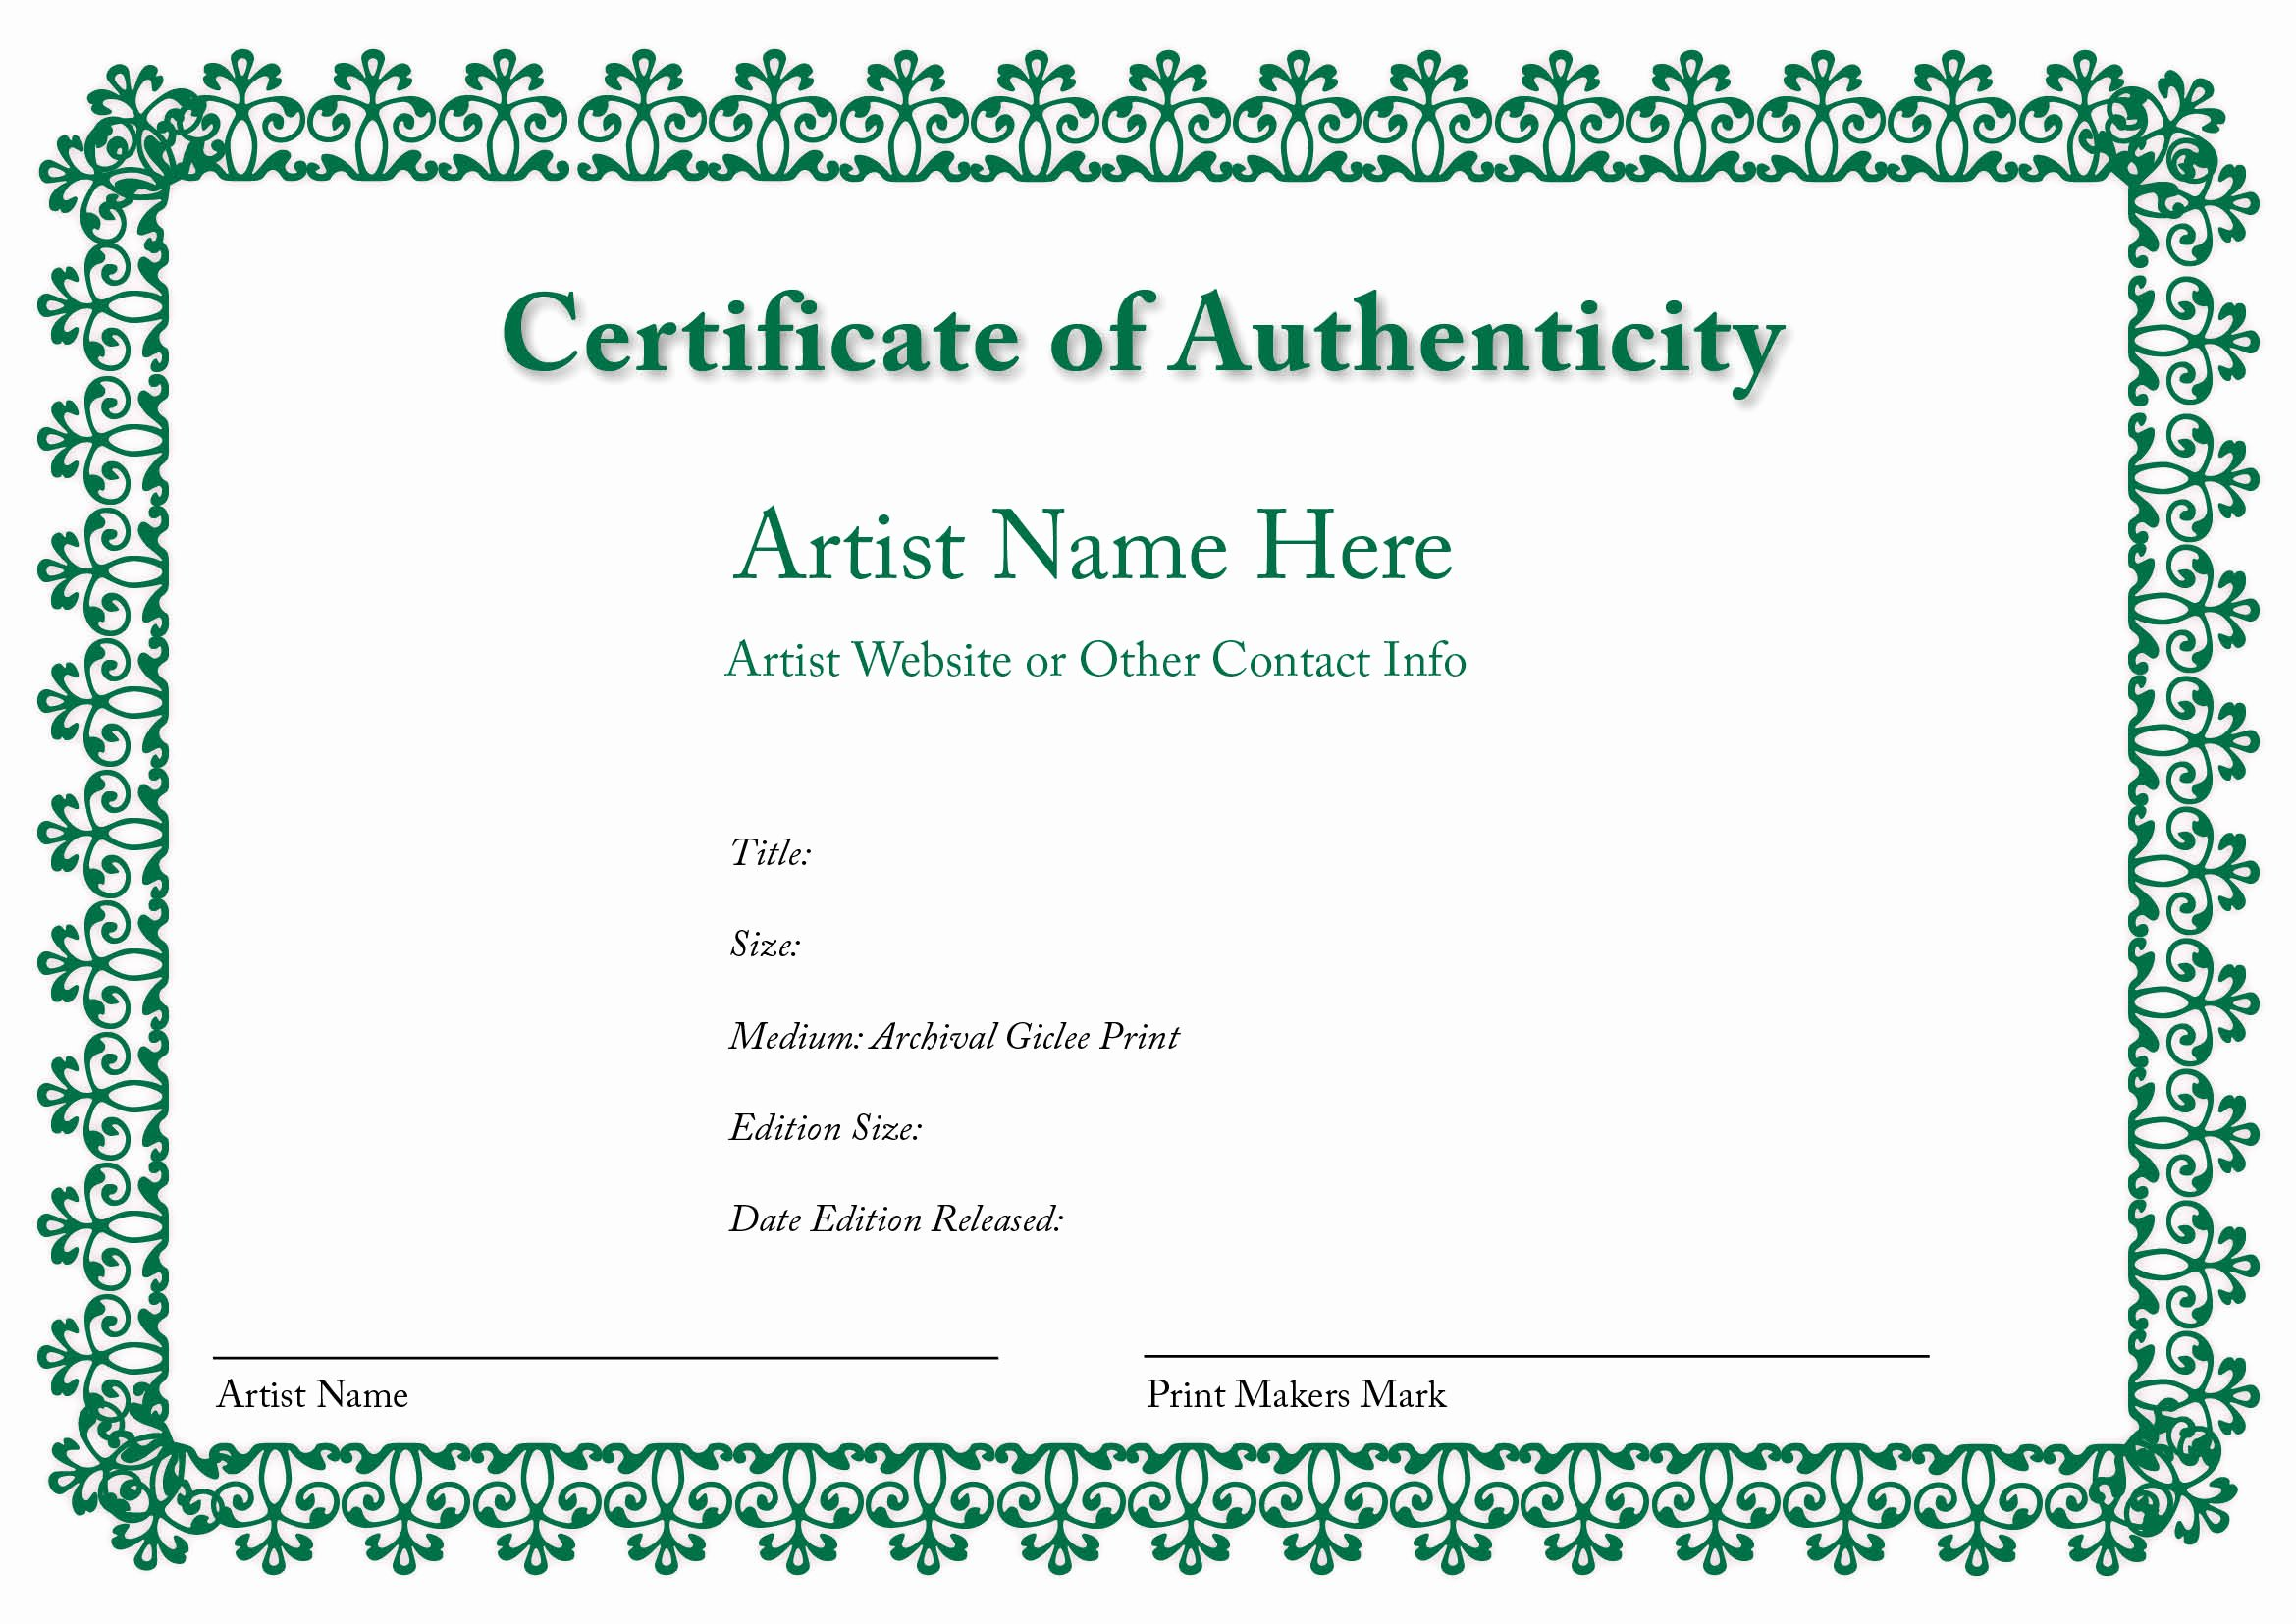 Certificate Of Authenticity Autograph Template Elegant Blank Certificates Of Authenticity